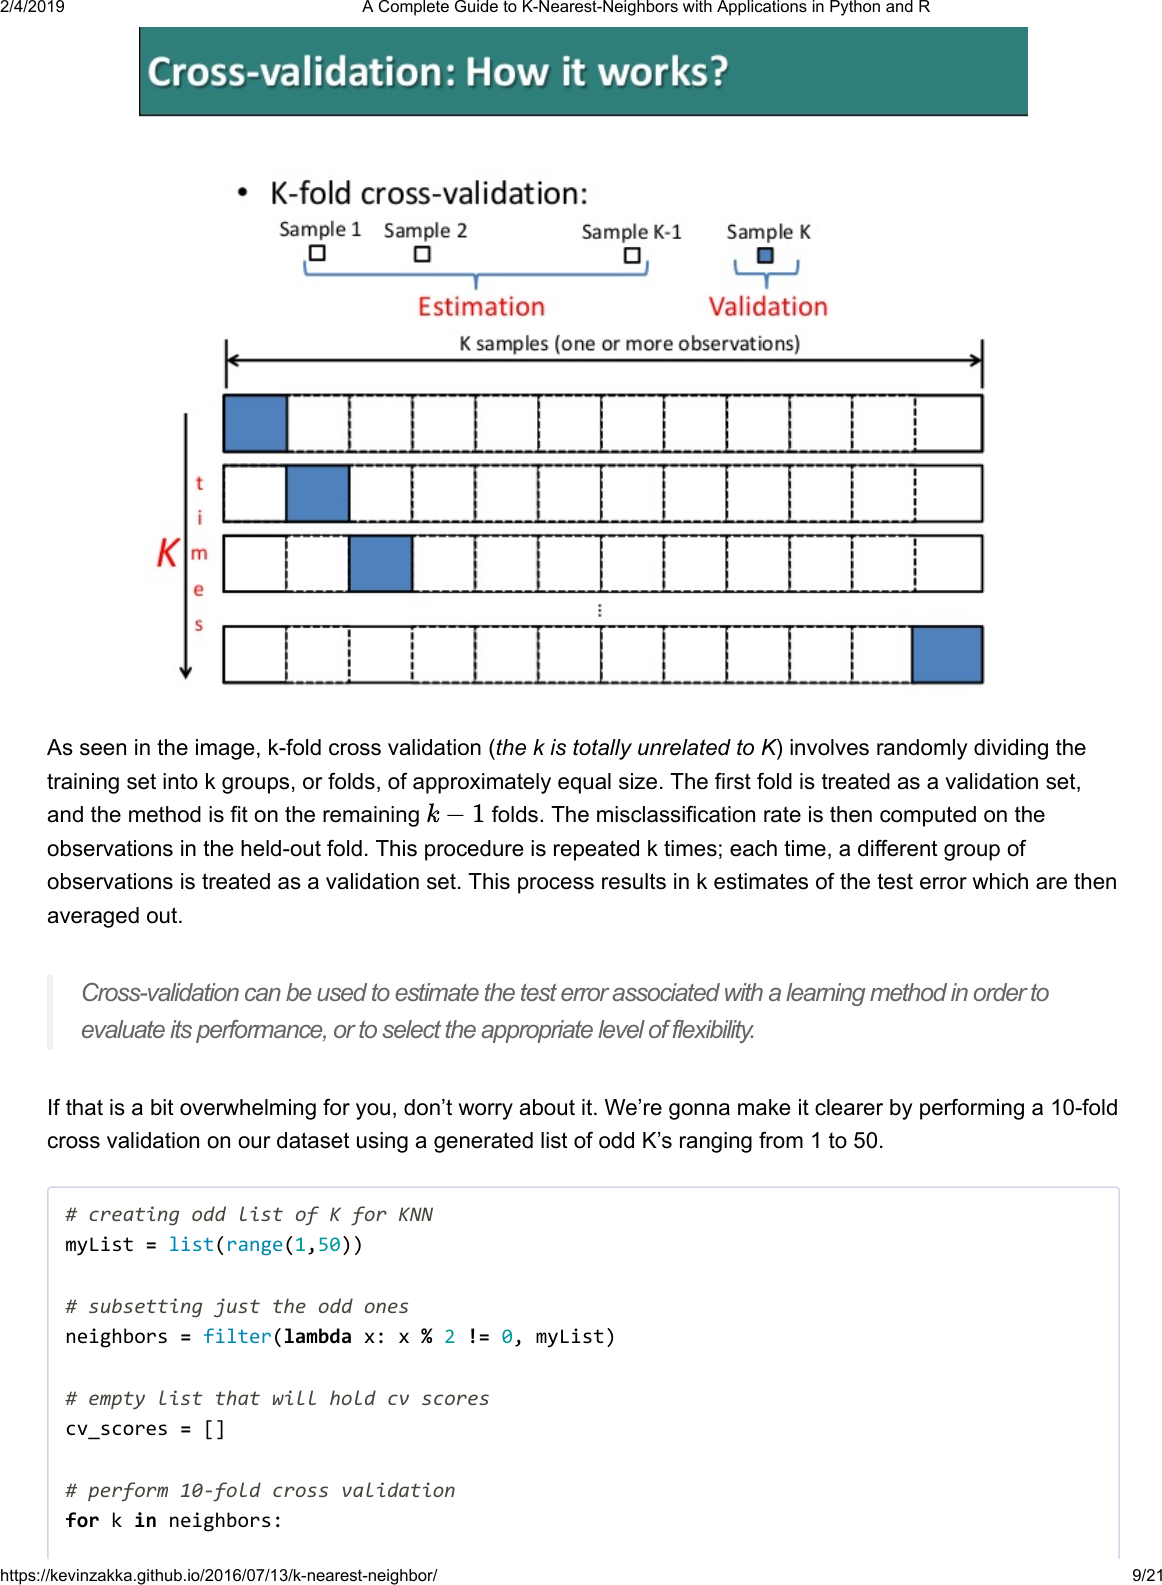 A Guide To K Nearest Neighbors With Applications In Python And R